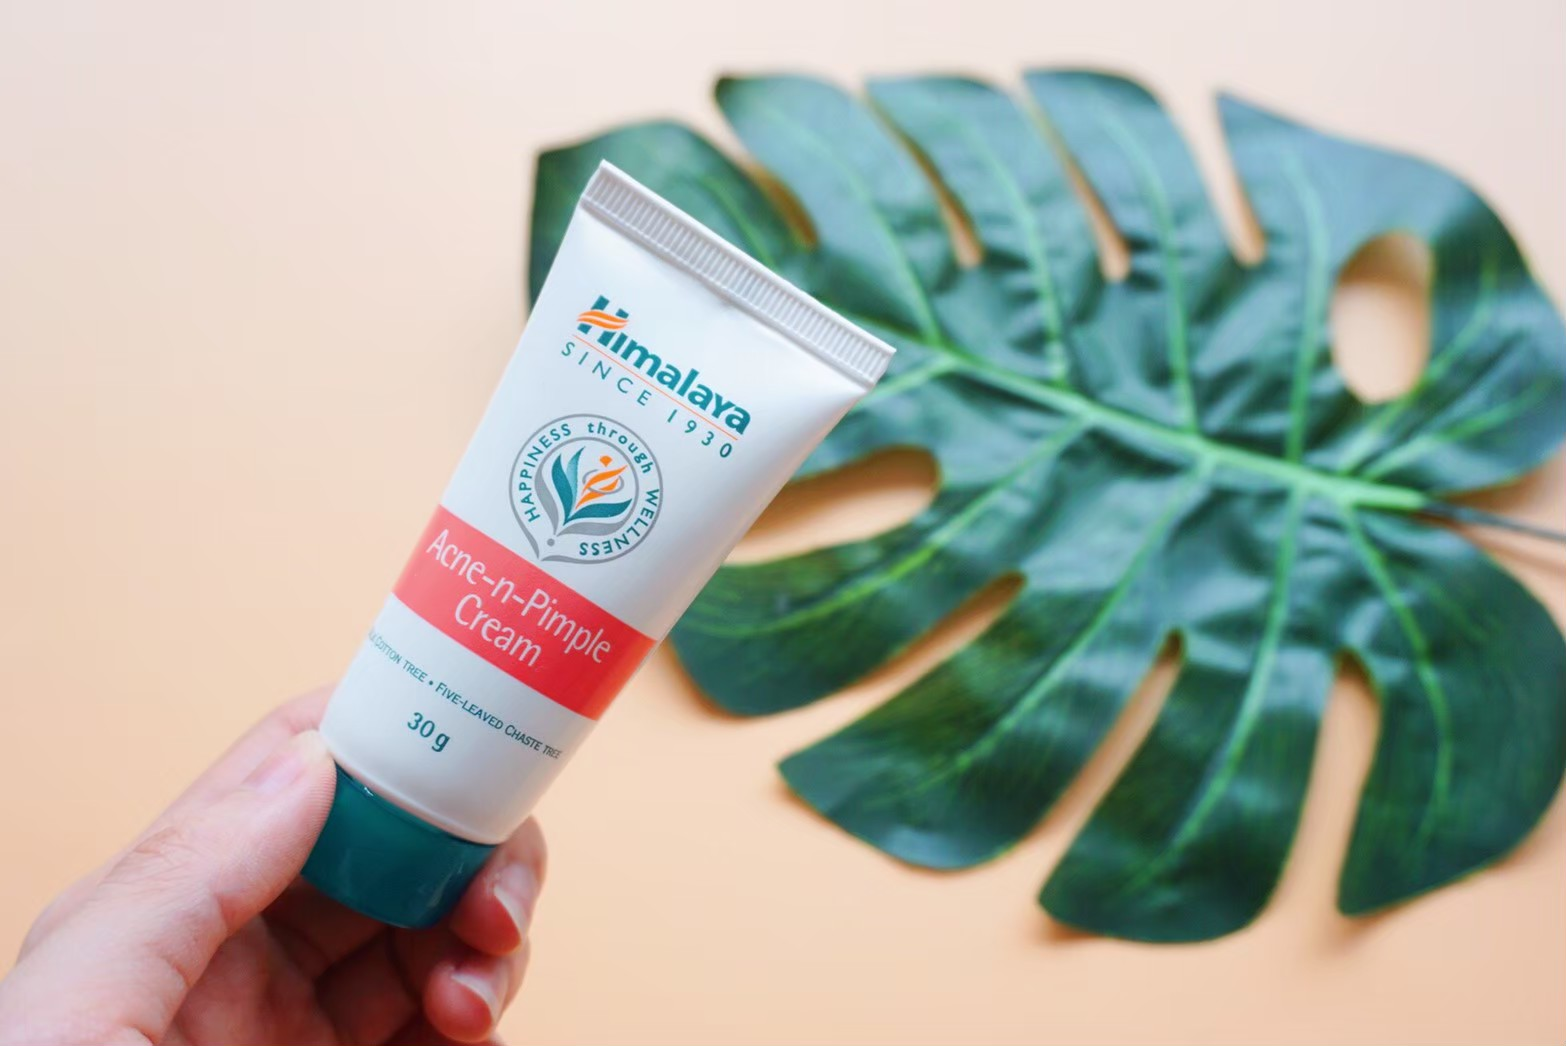 Himalaya Acne-n-Pimple Cream item